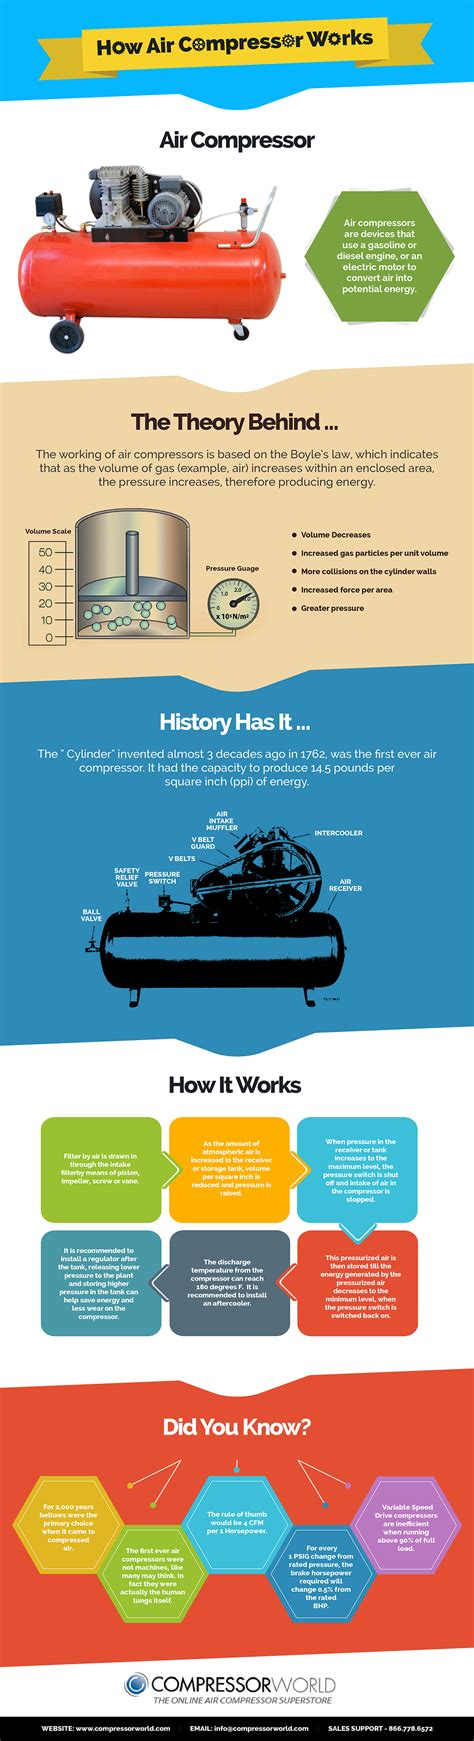 air compressors and how they work compressor world